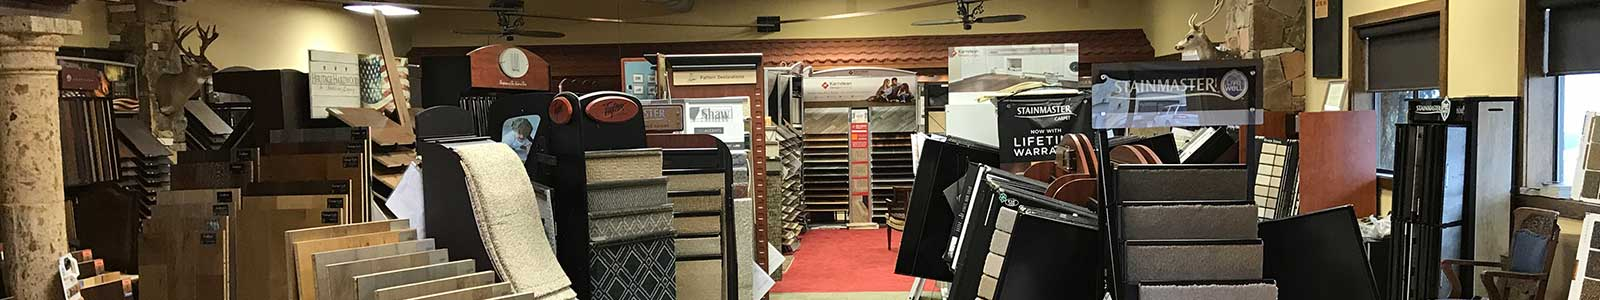 Clarlyle Flooring Center